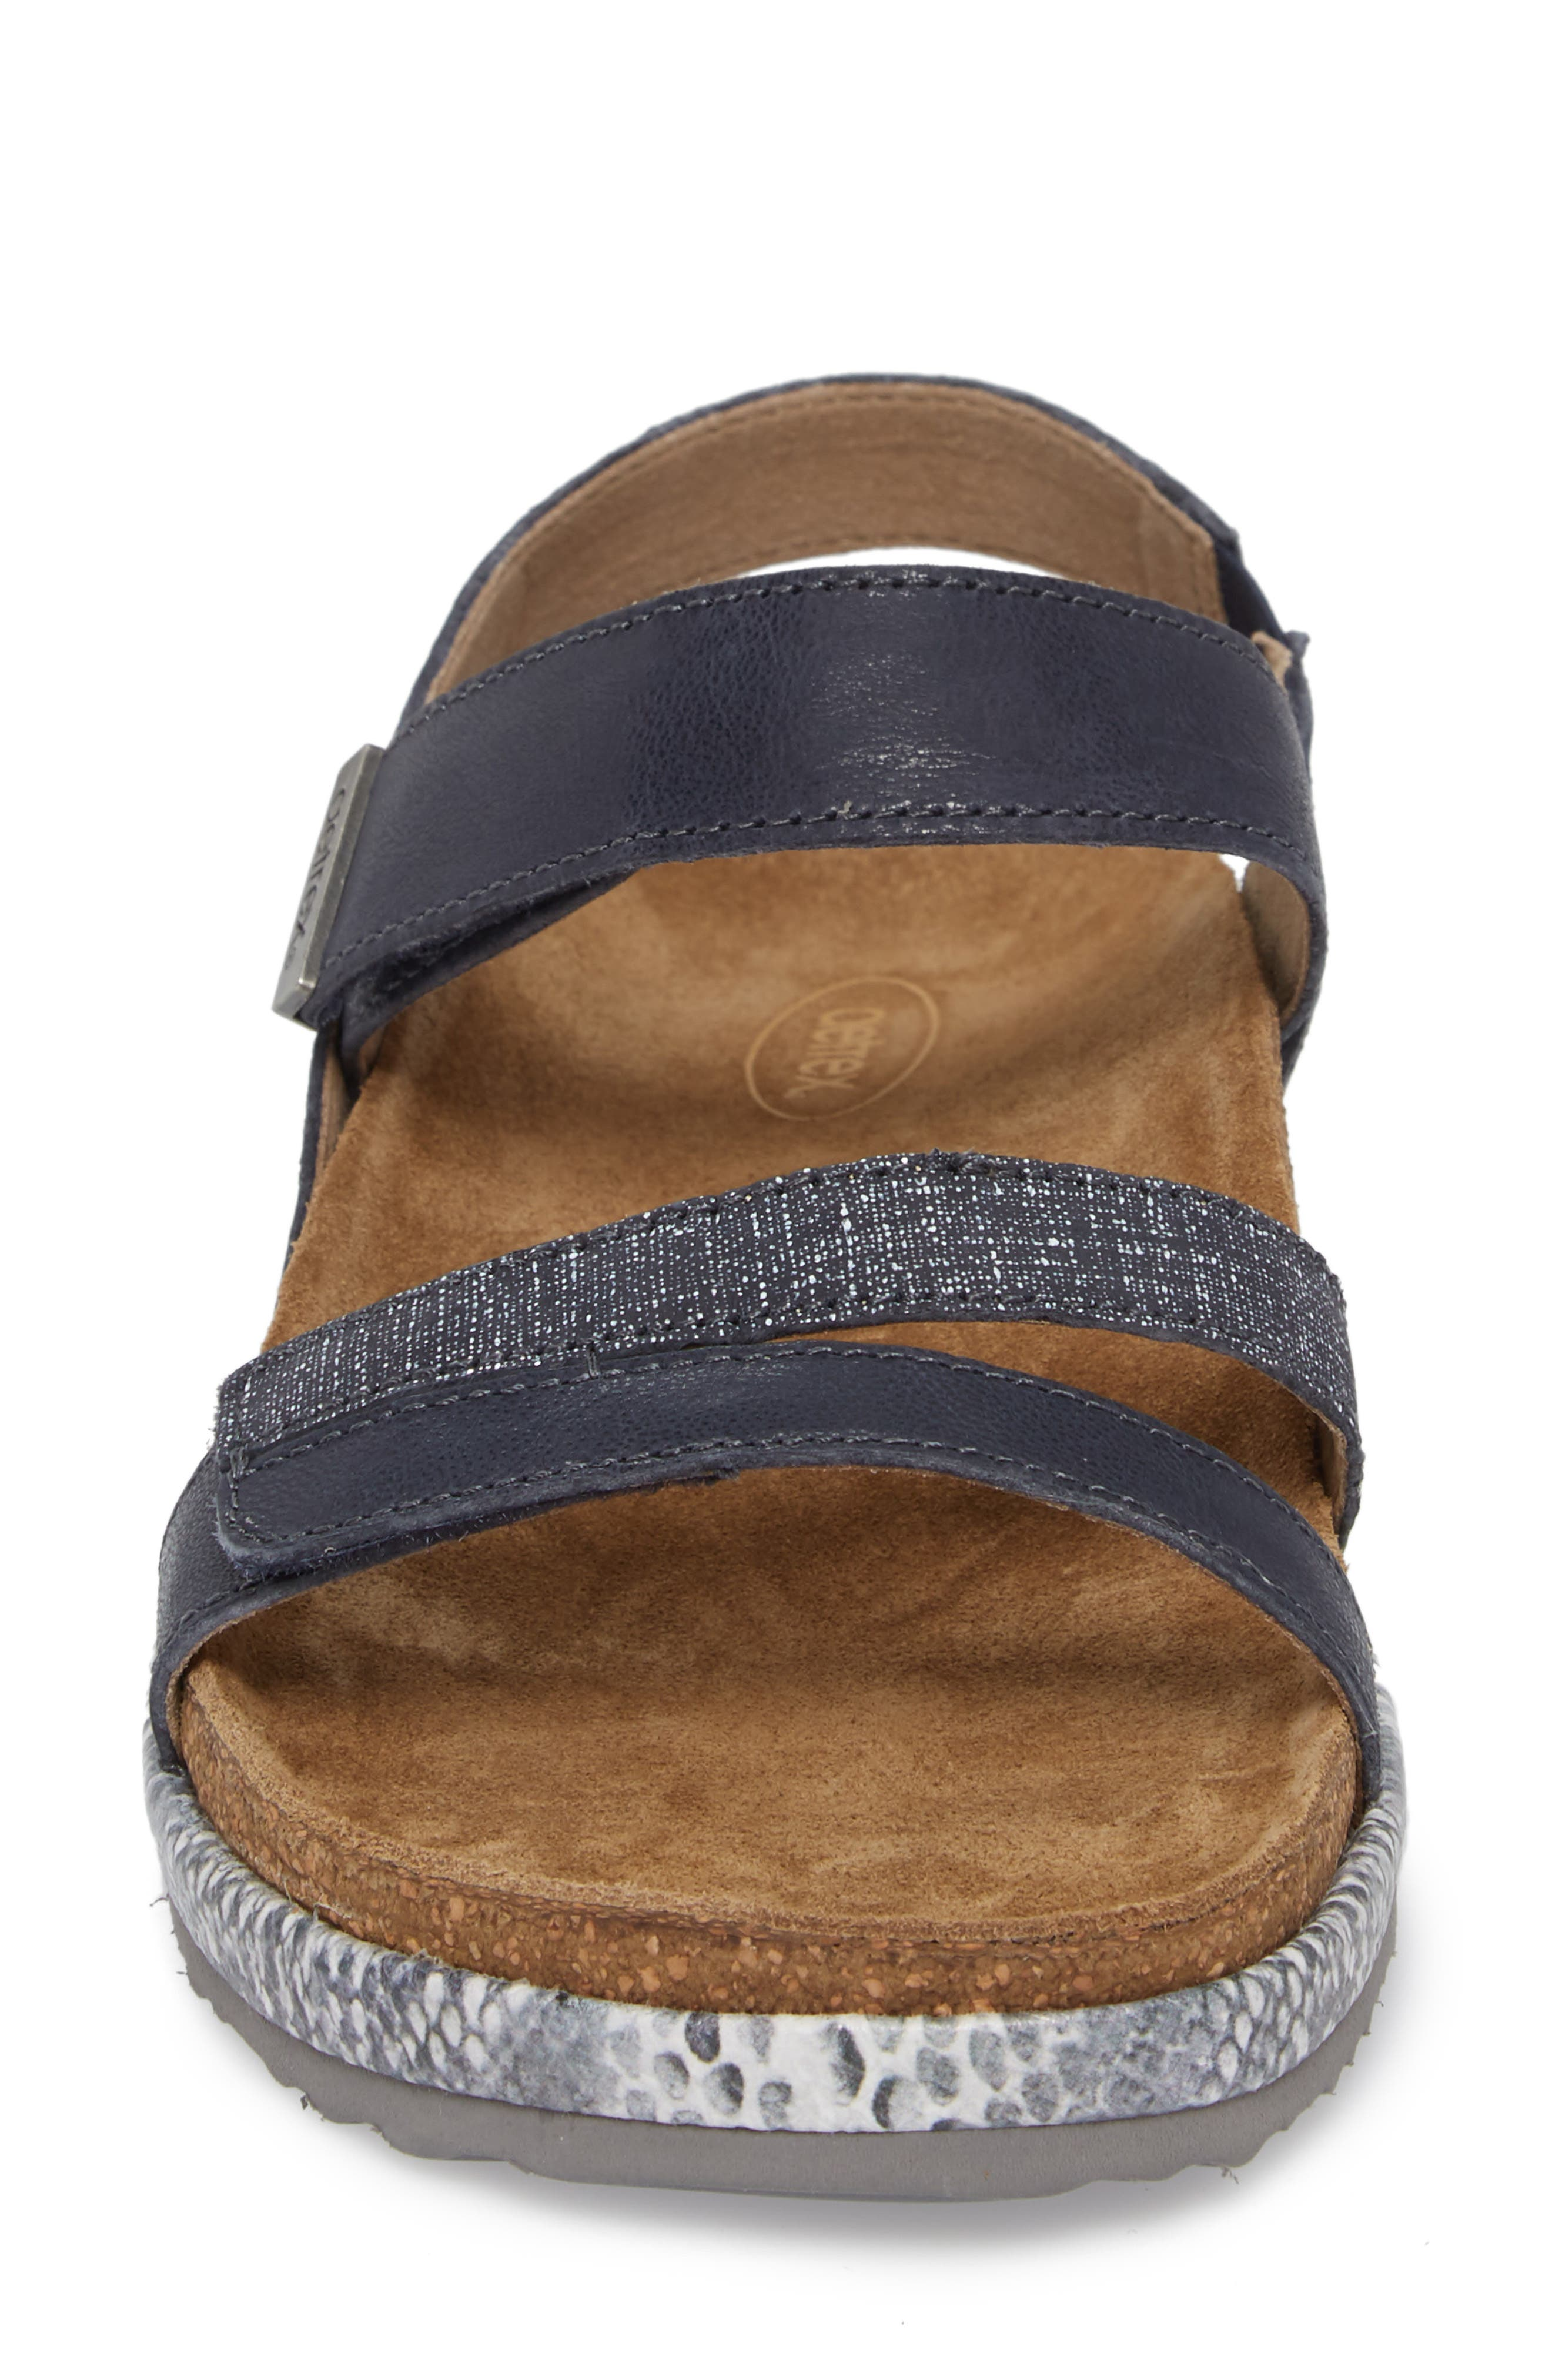 Bethany Sandal,                             Alternate thumbnail 4, color,                             Navy Multi Leather